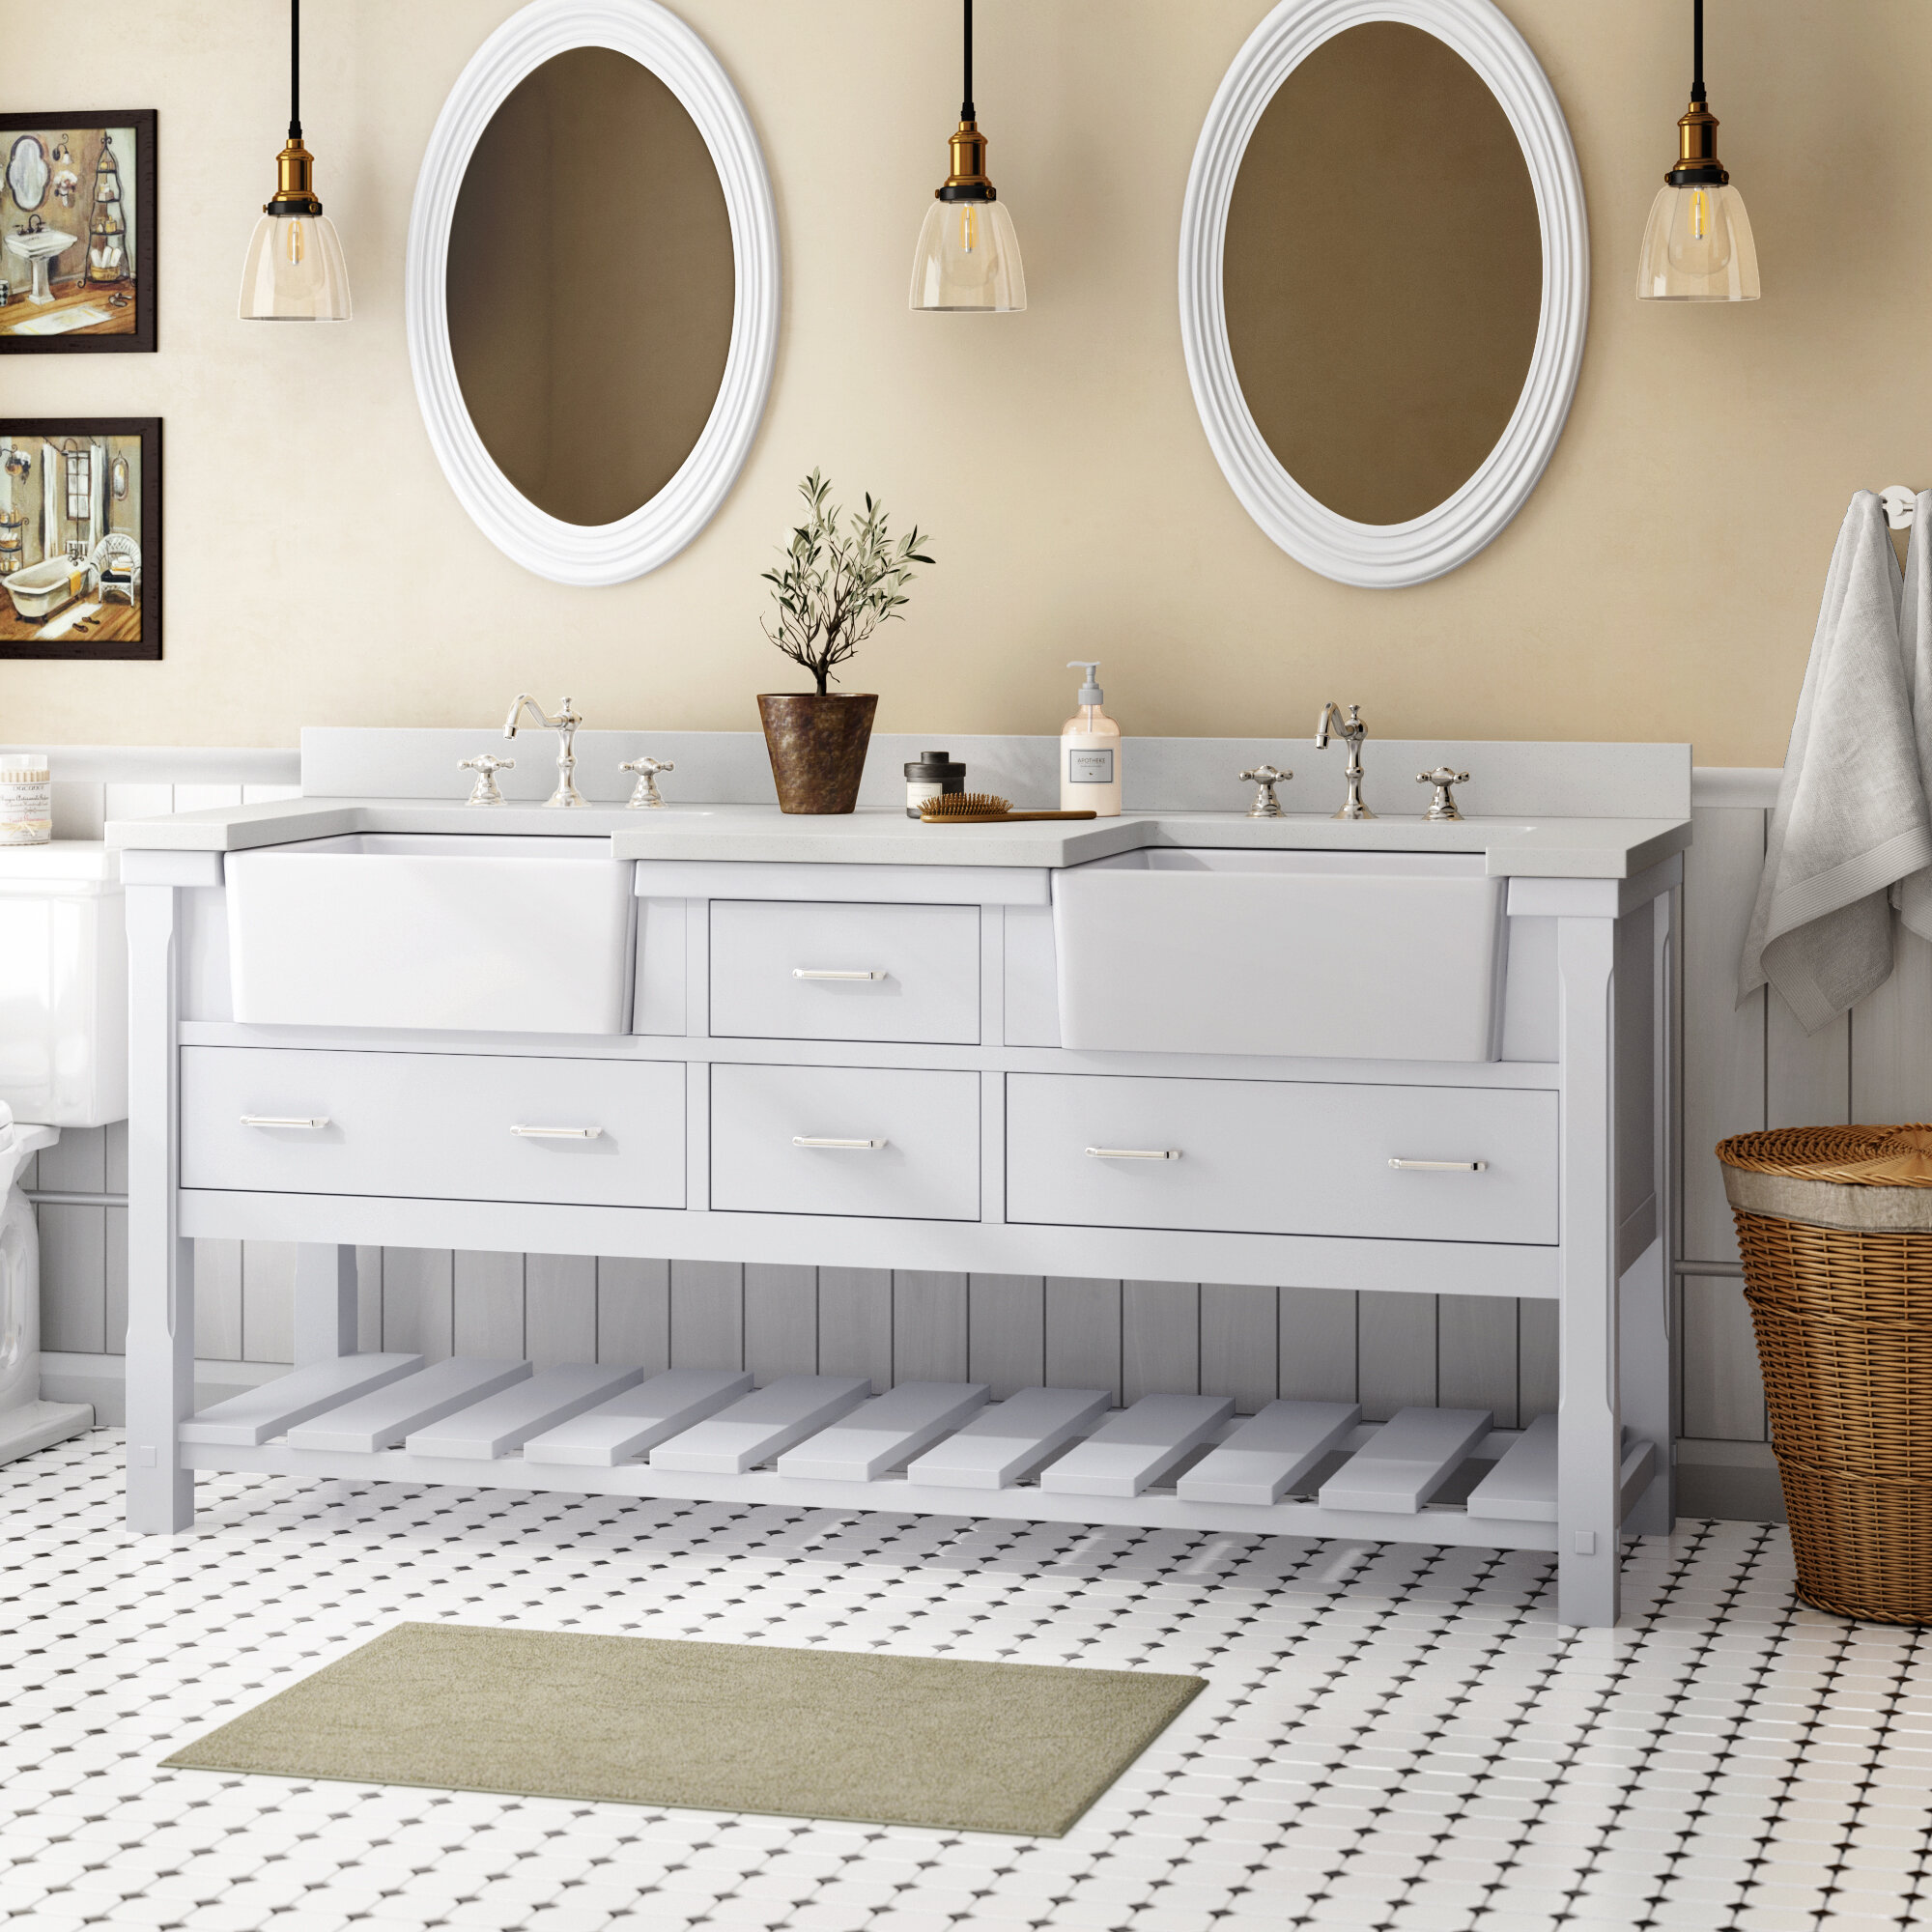 Groovy Find The Perfect 72 Inch Vanities Wayfair Interior Design Ideas Gentotryabchikinfo